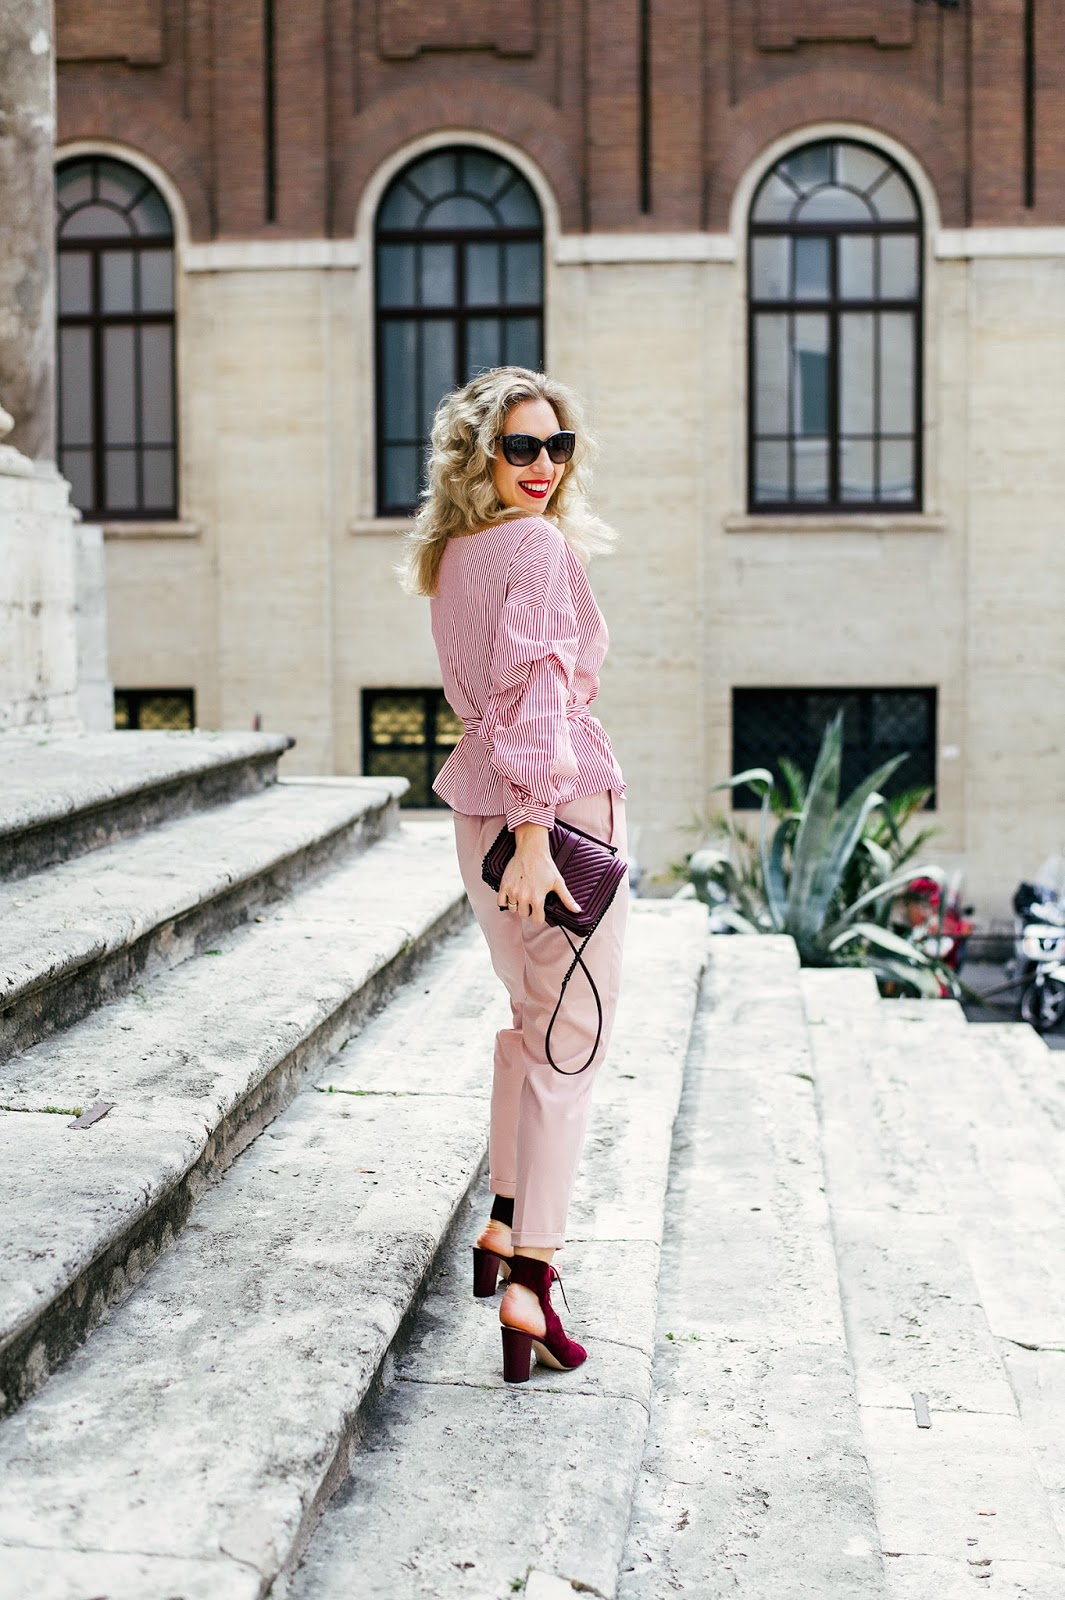 Margarita_Maslova_Ritalifestyle_Fashion_blogger_Moscow_roma _taly_romantic_summer_outfit_Zara_blouse_ruffles_TRAvel_blog